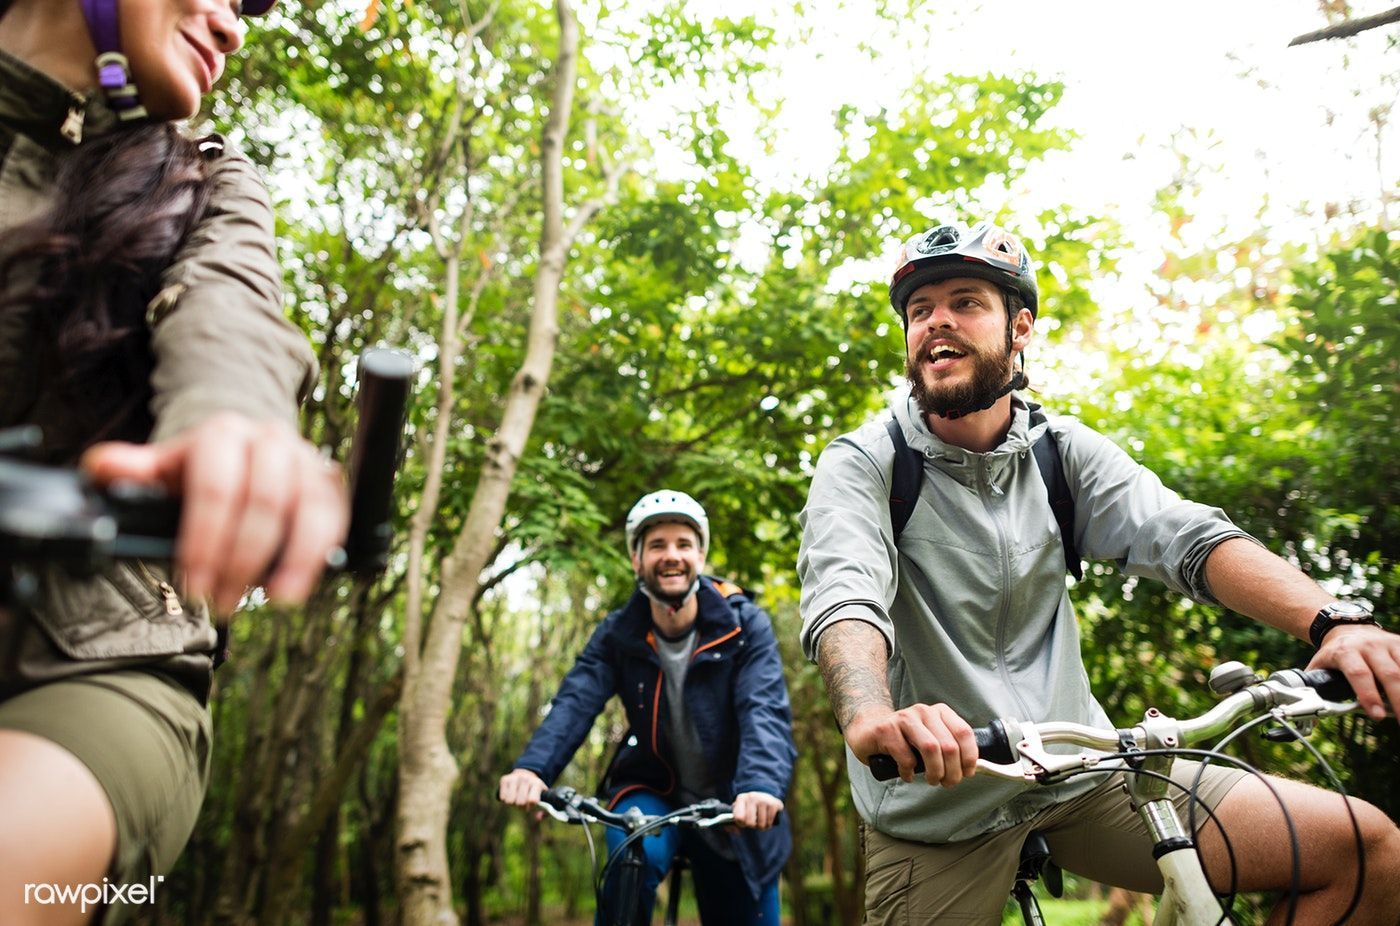 Download Premium Image Of Group Of Friends Ride Mountain Bike In